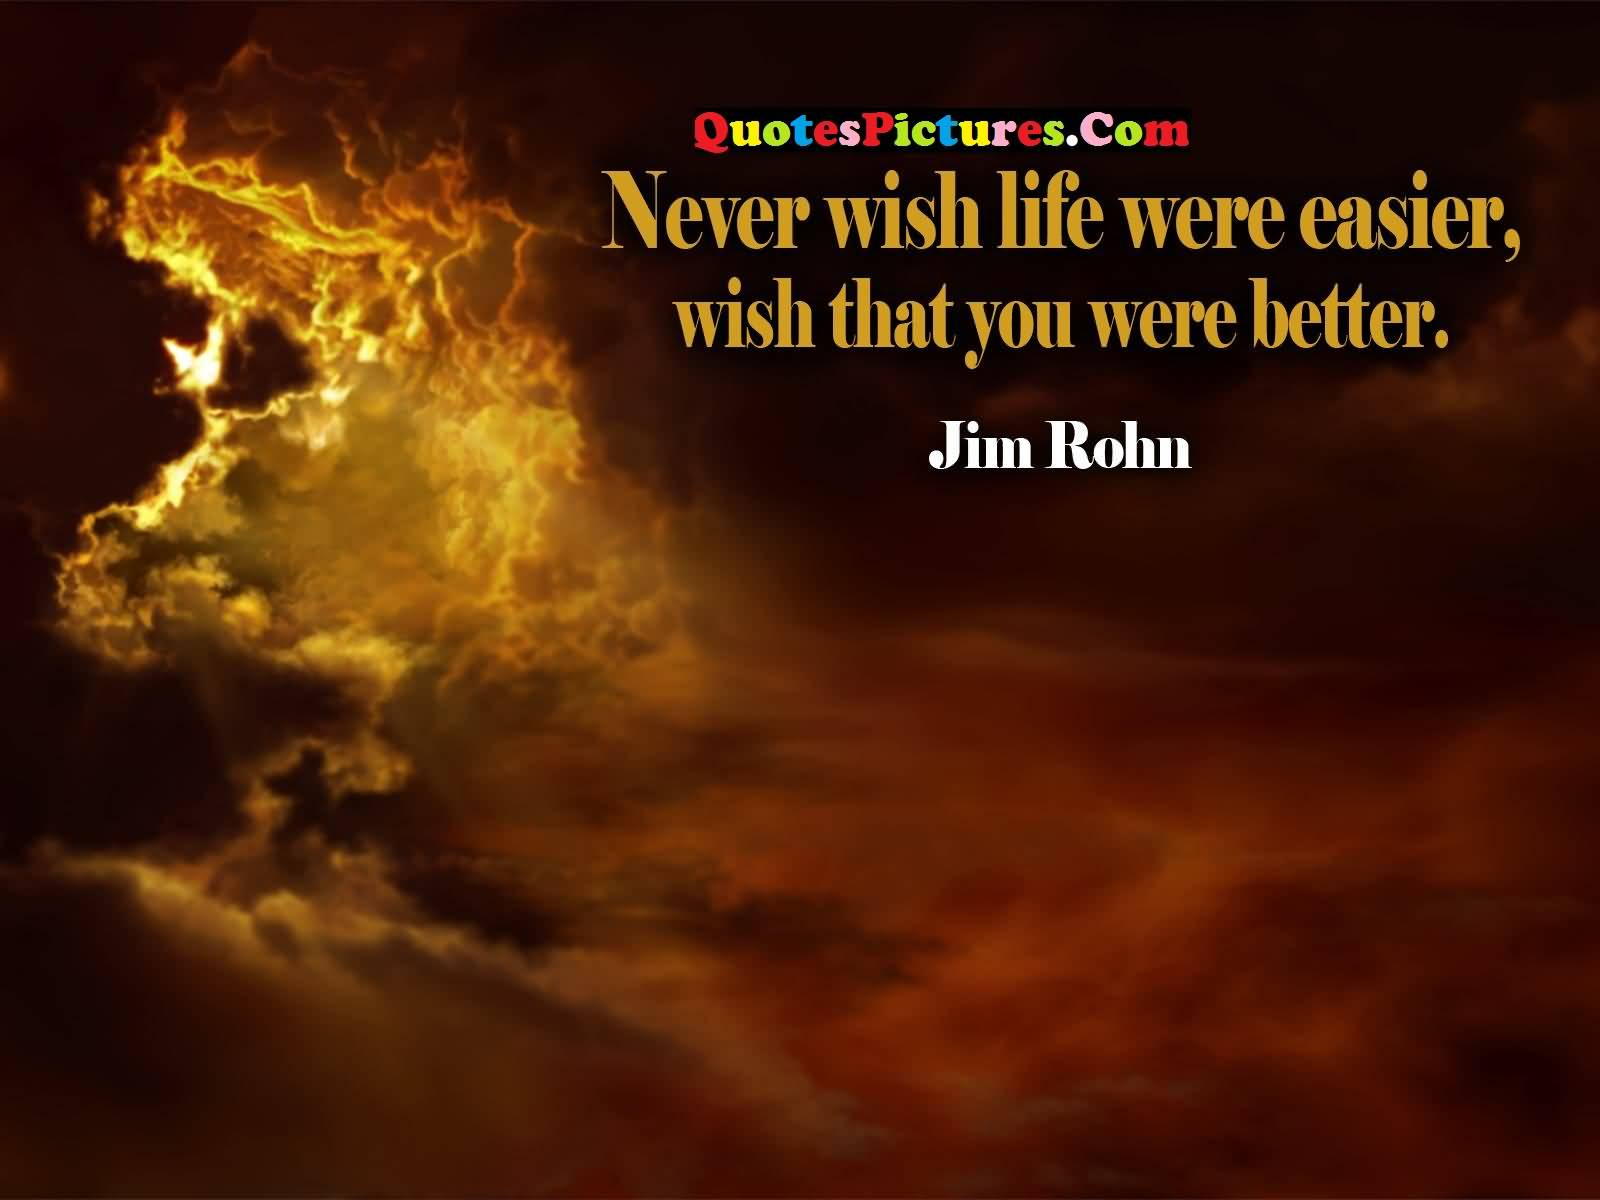 Awesome Love Quote - Never Wish Life Were Easier By Jim Rohn